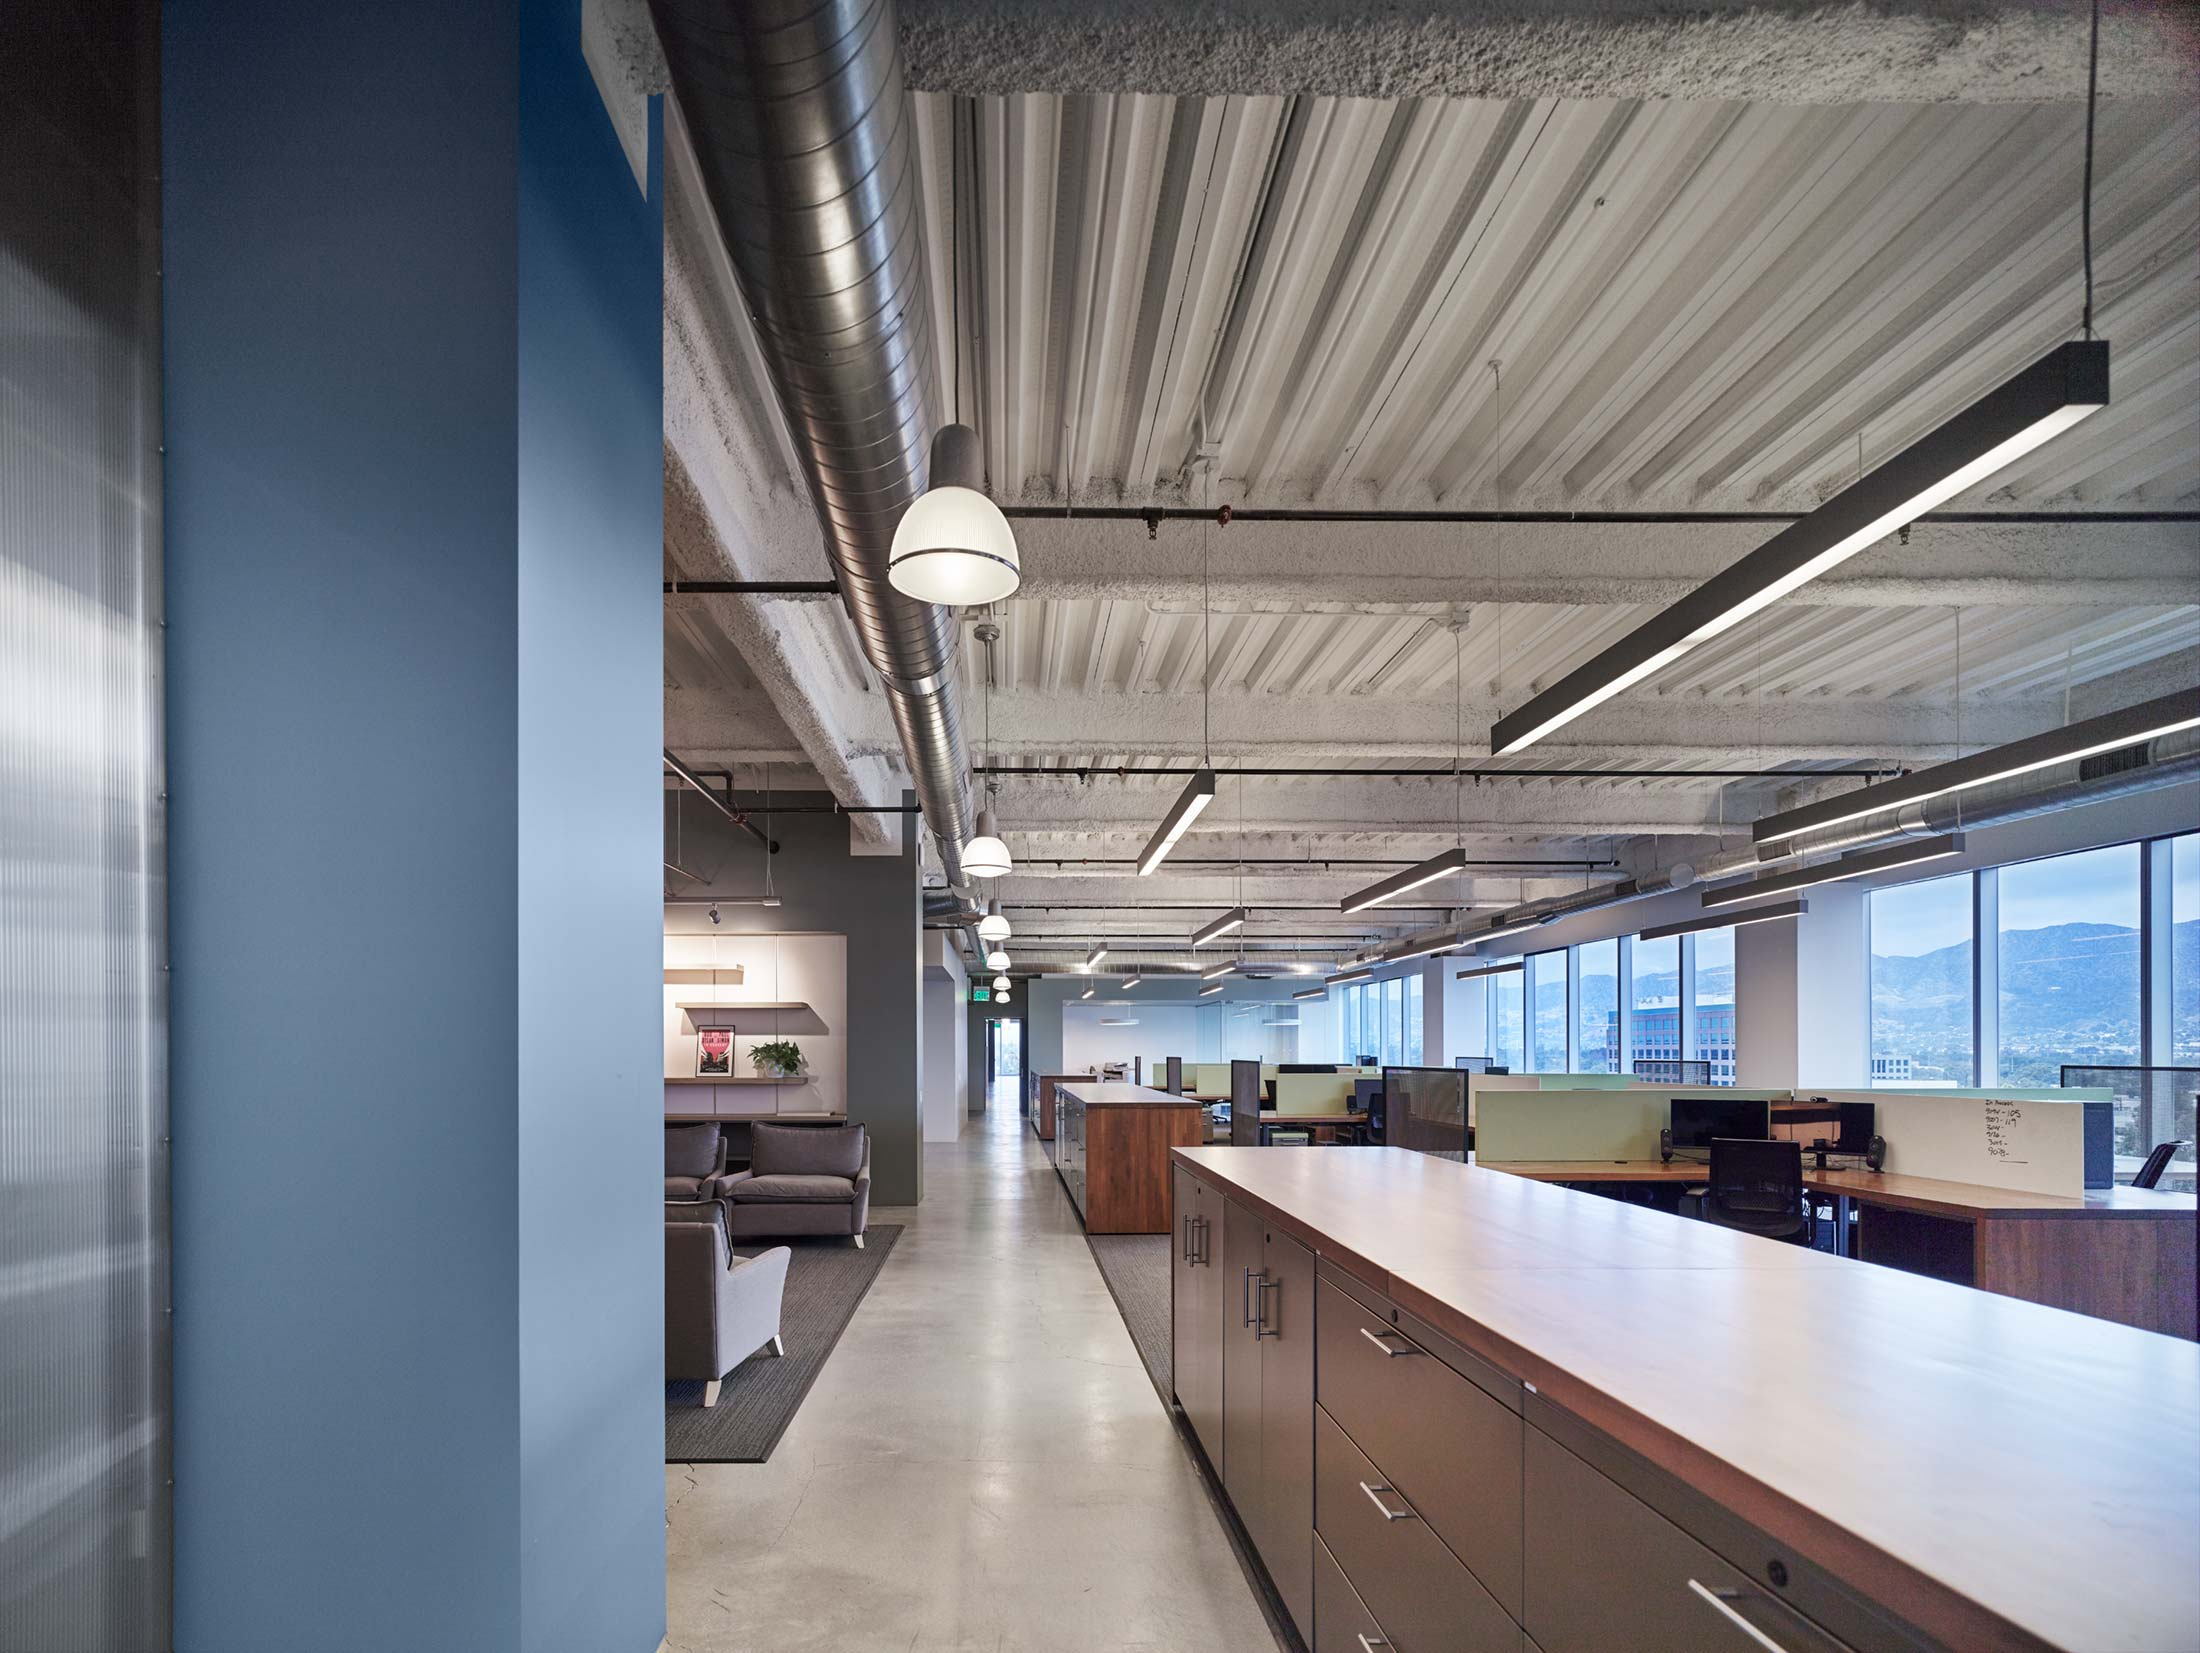 modern-architecture-commercial-interiors-workplace-office-california-shubindonaldson-freemantle-media-03